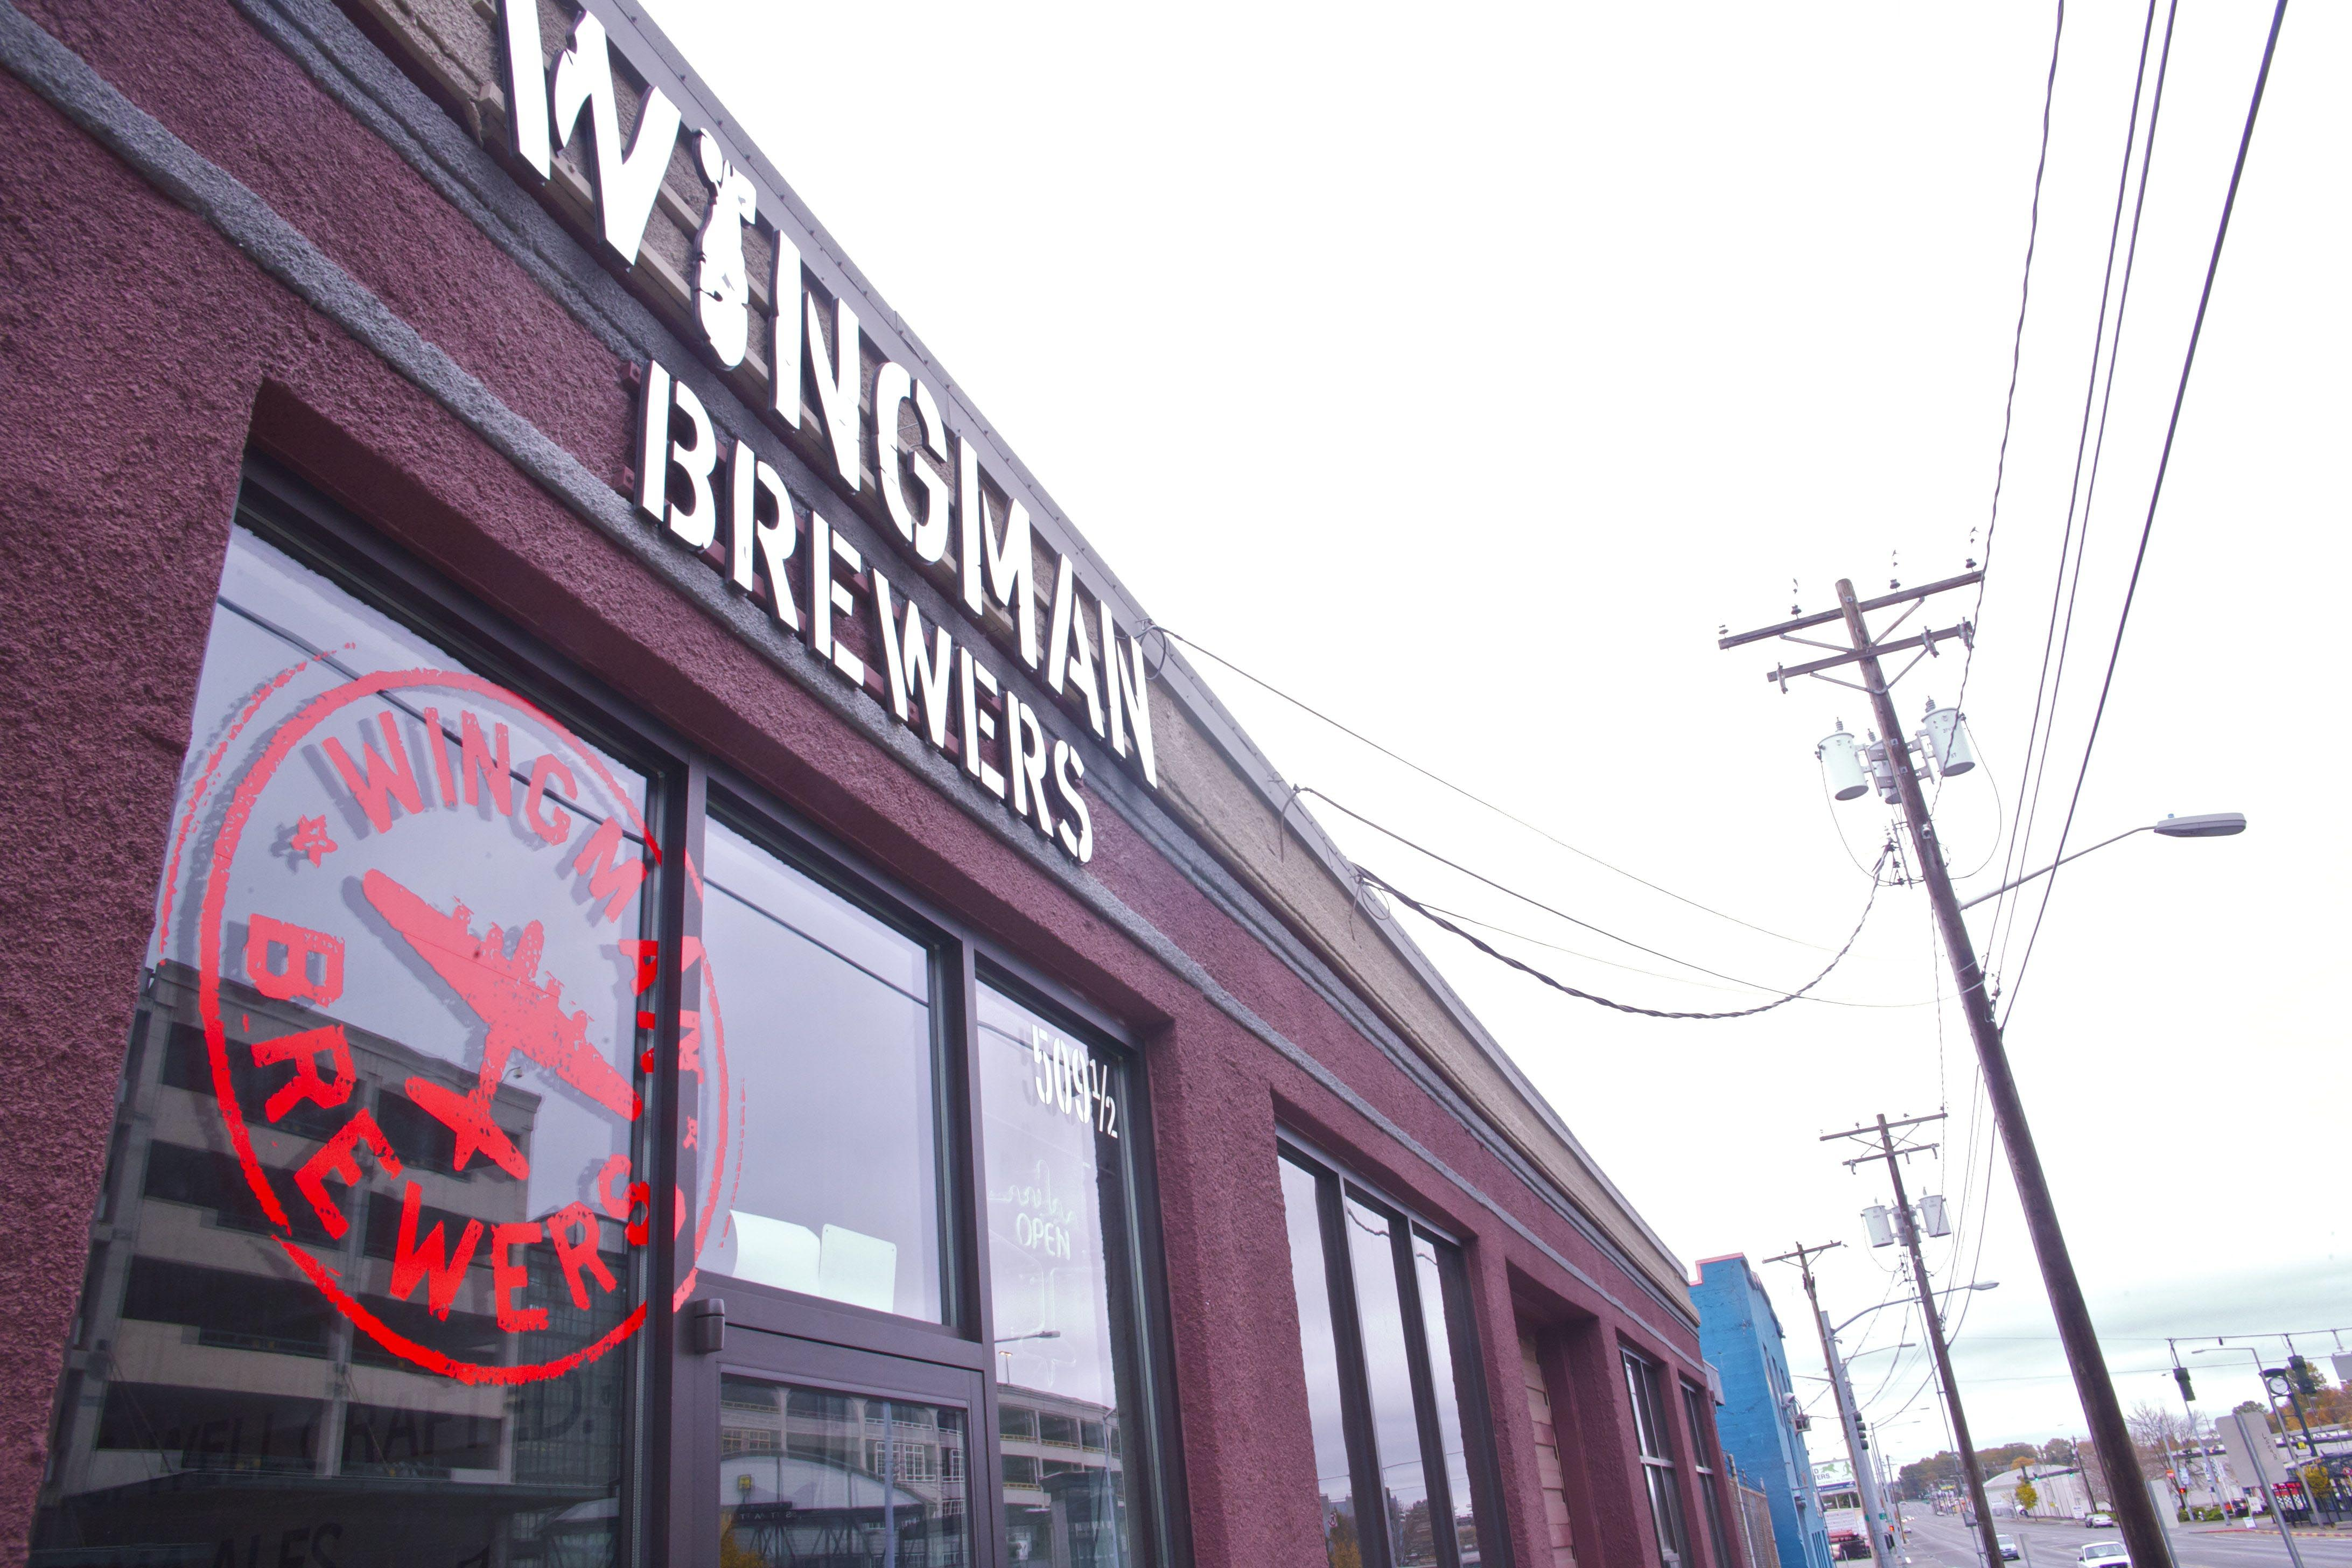 The Wingman Brewing tap room on Puyallup Avenue, near the Tacoma Dome